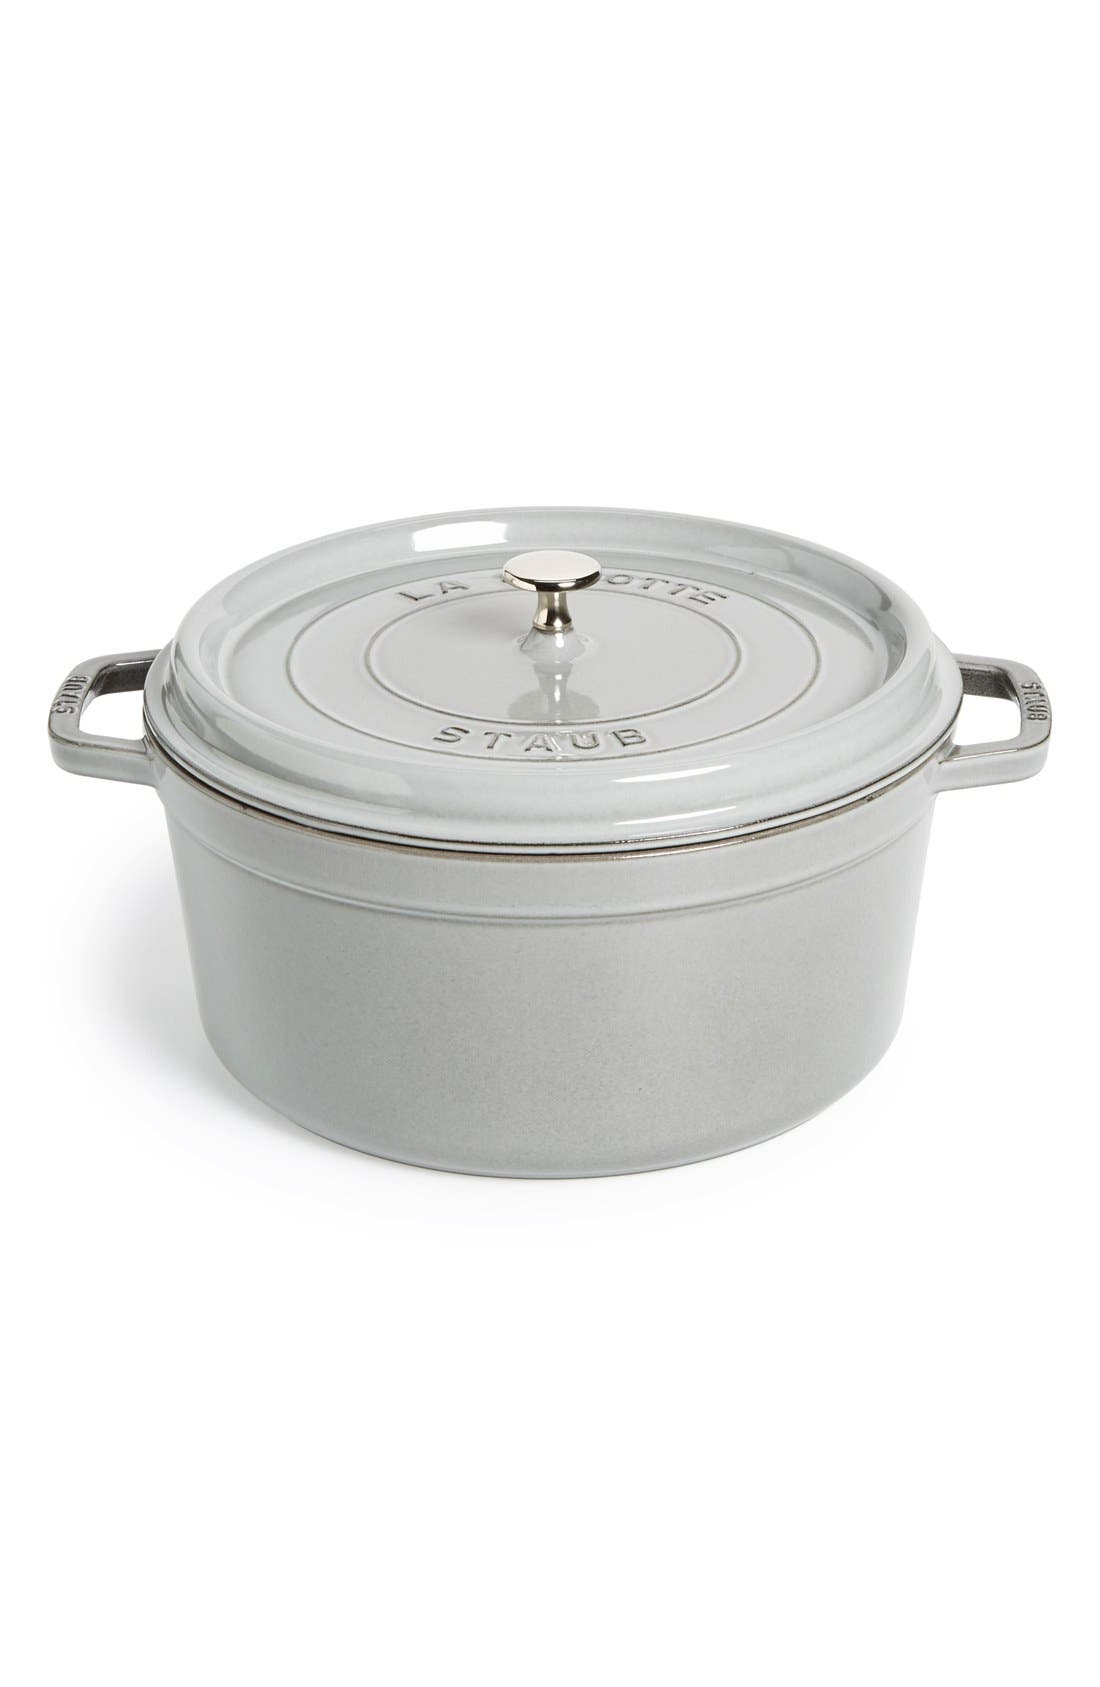 Alternate Image 1 Selected - Staub Large 9 Quart Round Enameled Cast Iron Cocotte